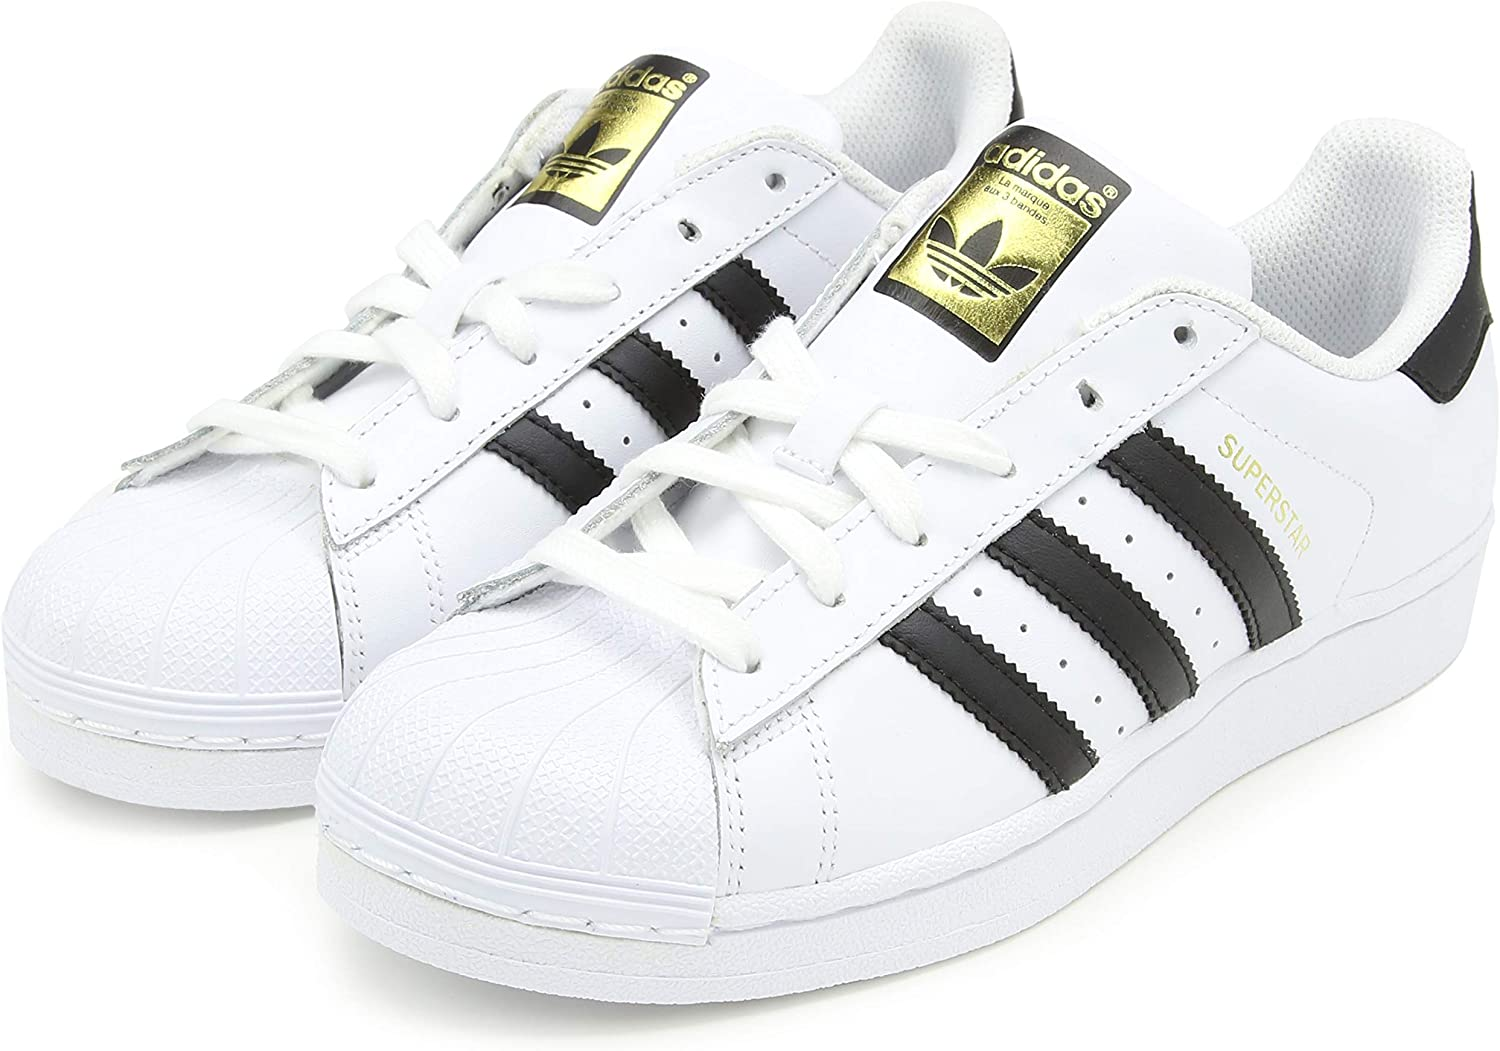 Adidas Superstar Amazon.com | adidas Originals Kid's Unisex Superstar White/Black ...